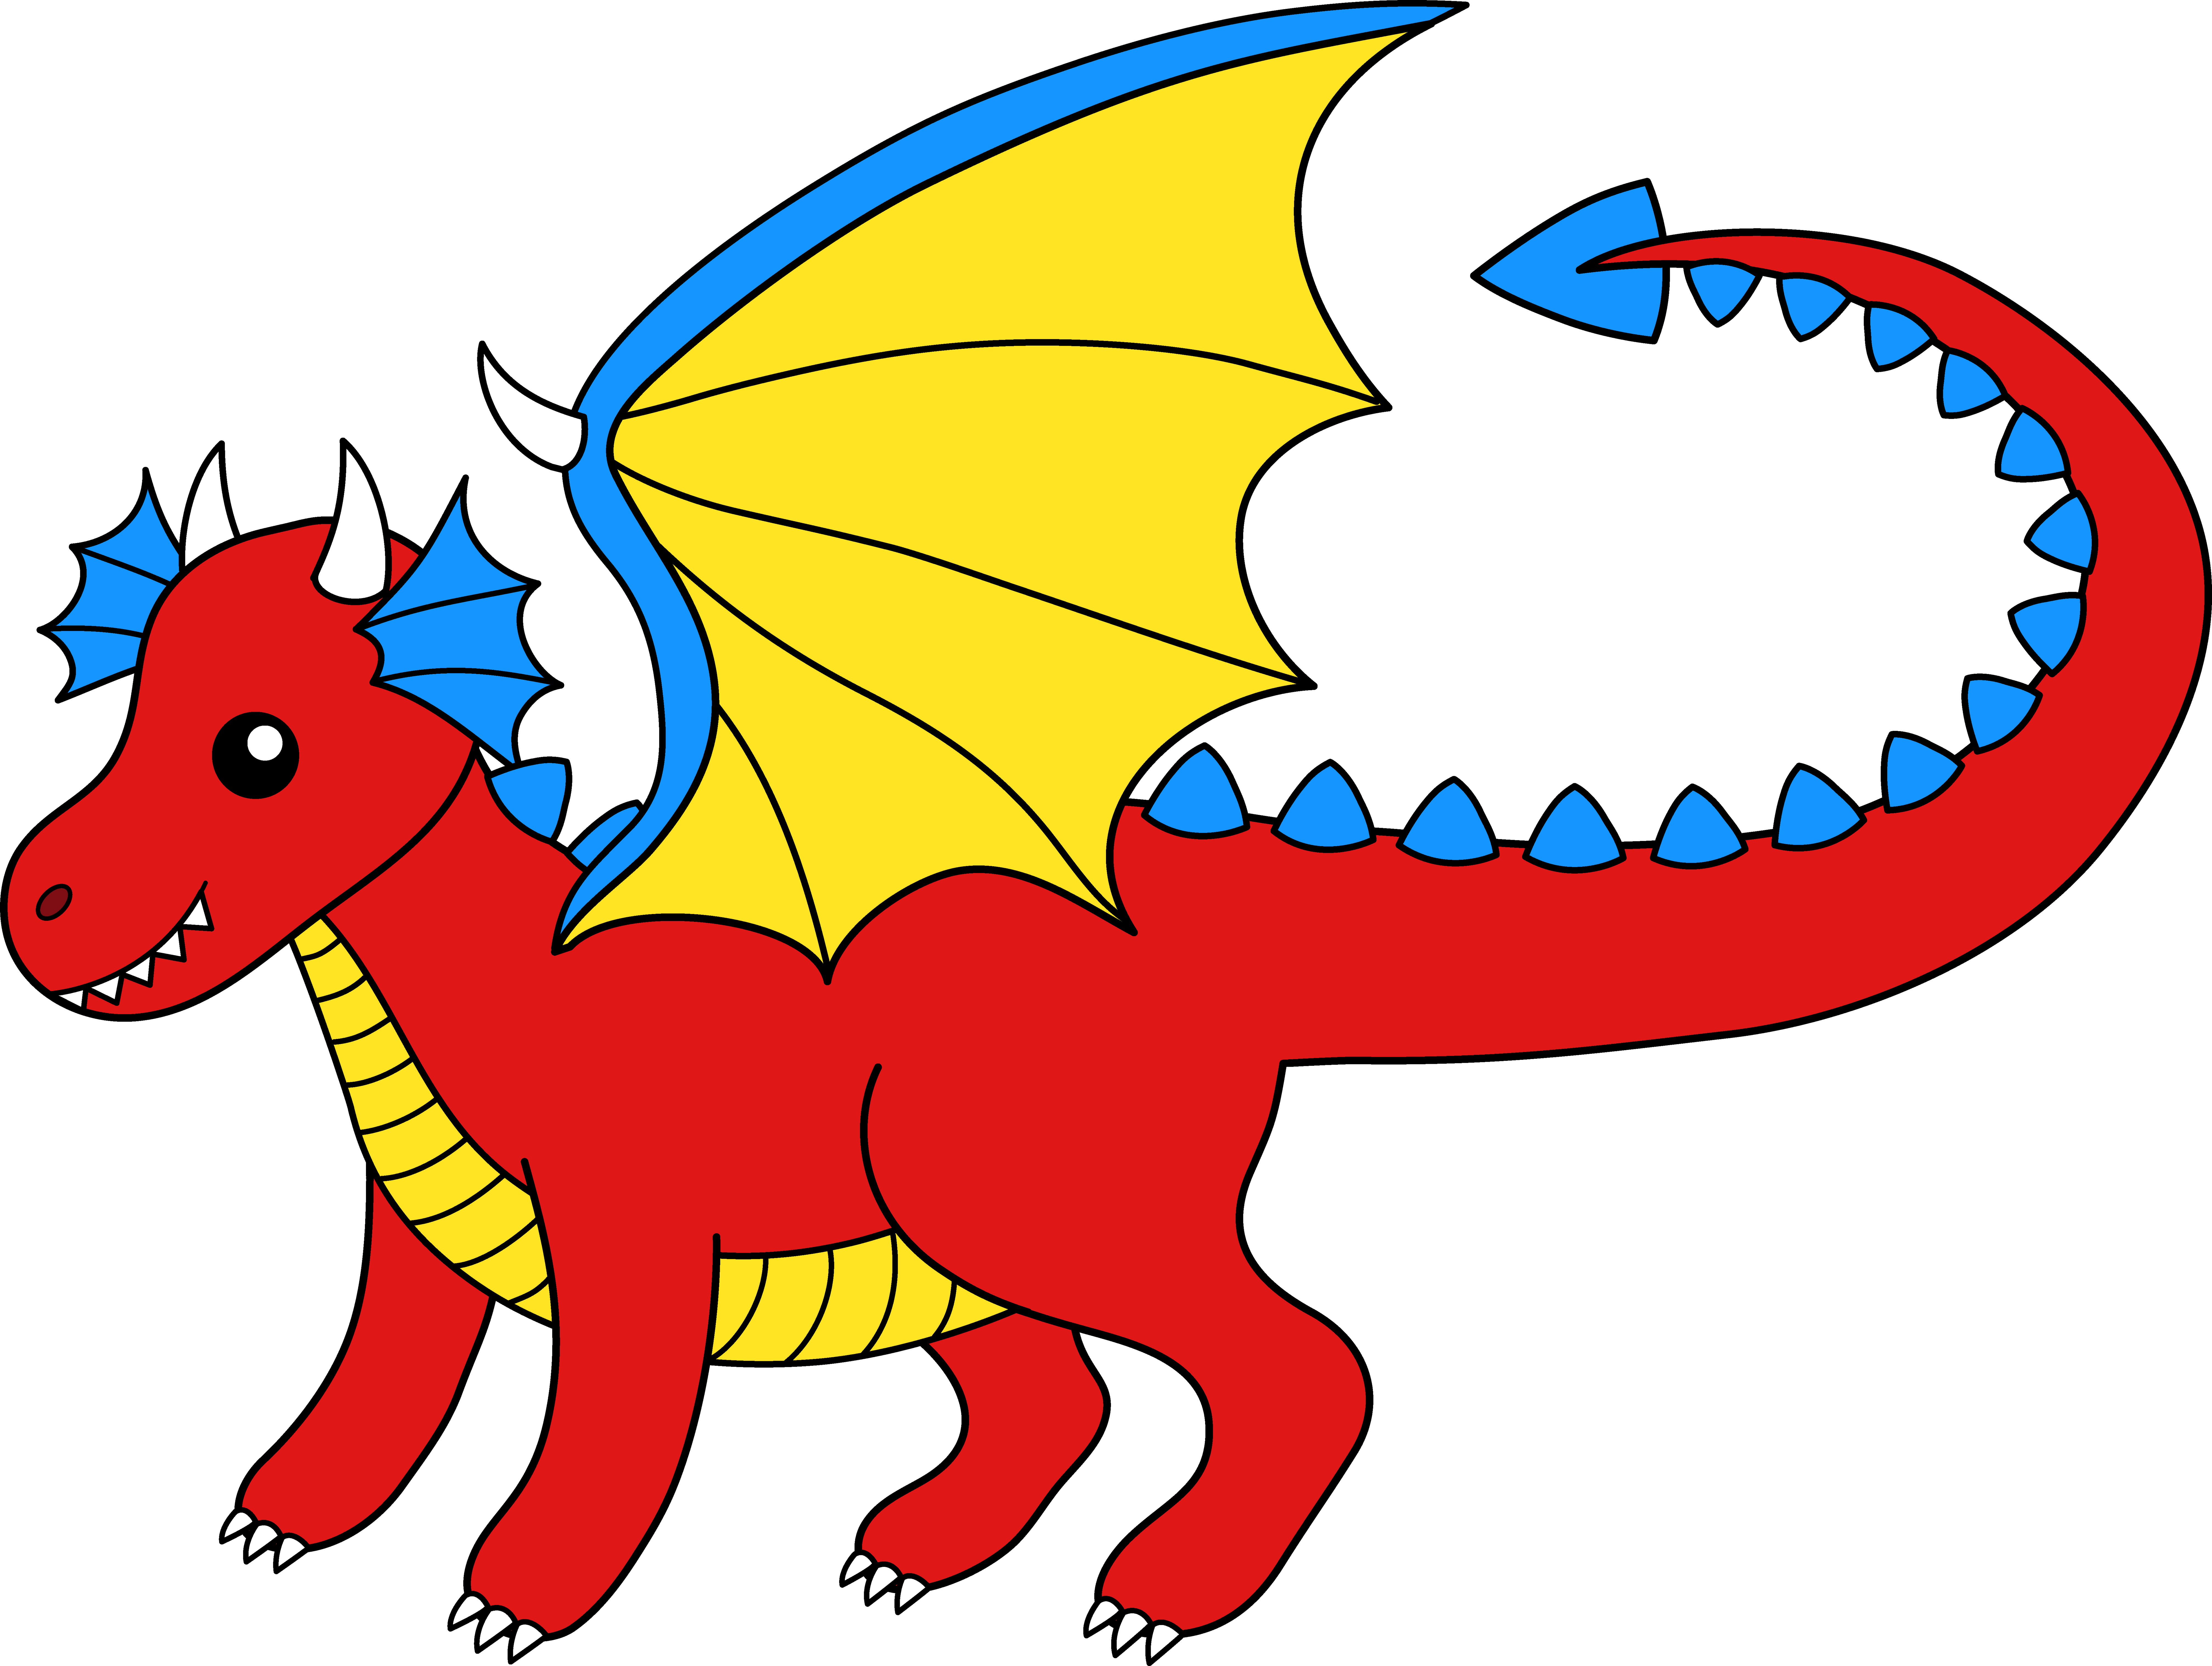 Dragon Clipart Hd 1080p.